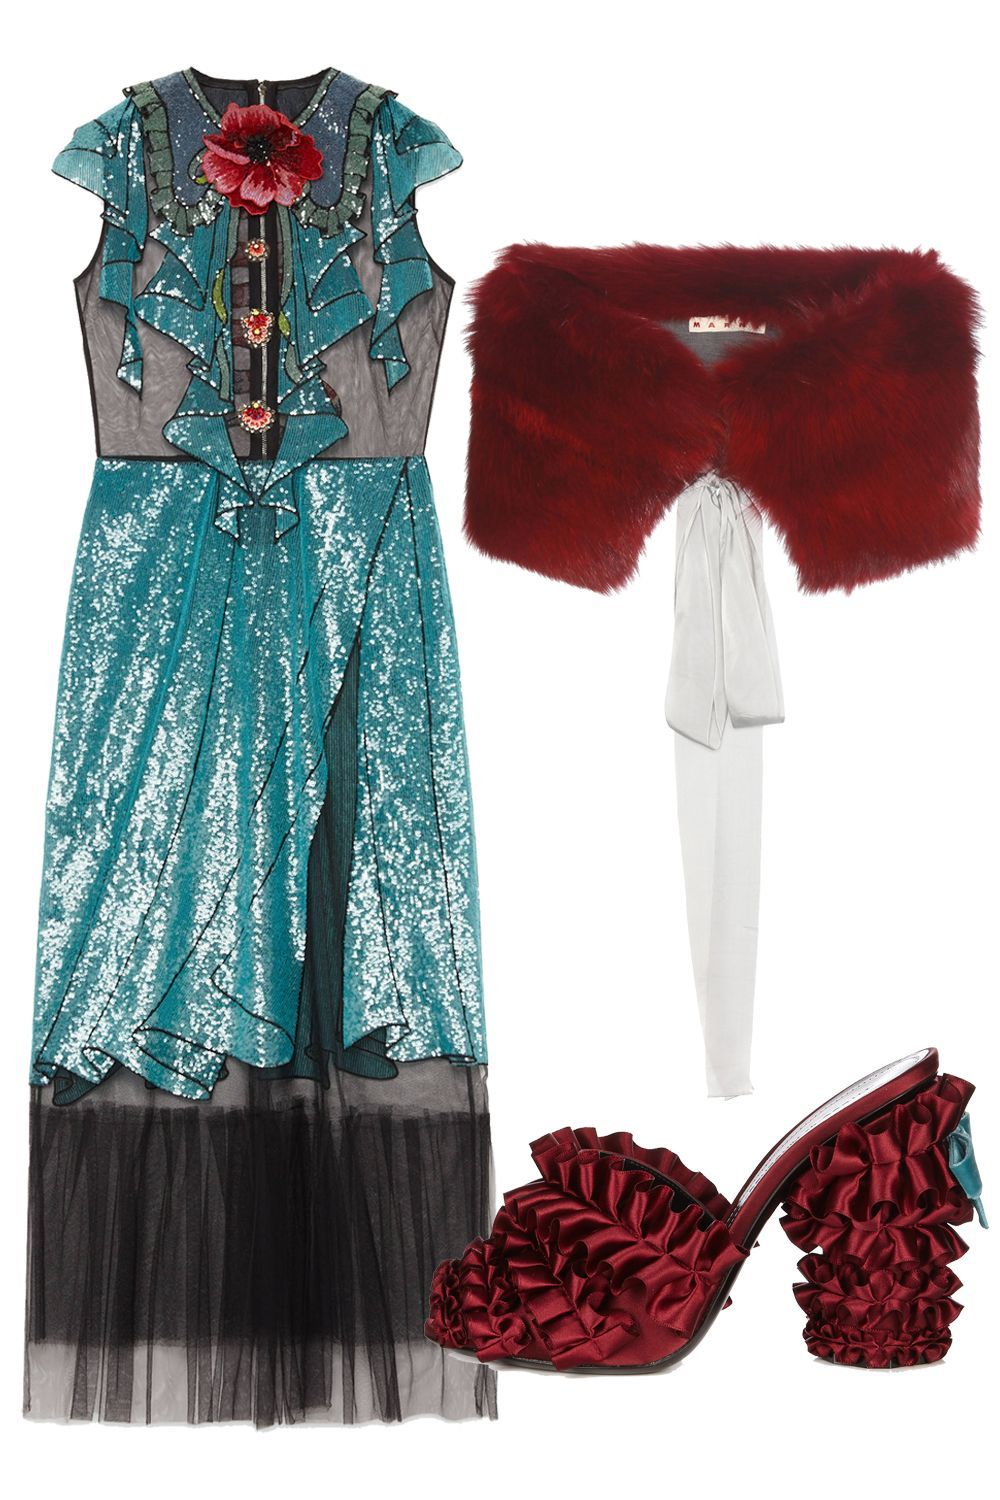 Attractive Outfits For Winter Weddings Image Collection - All ...